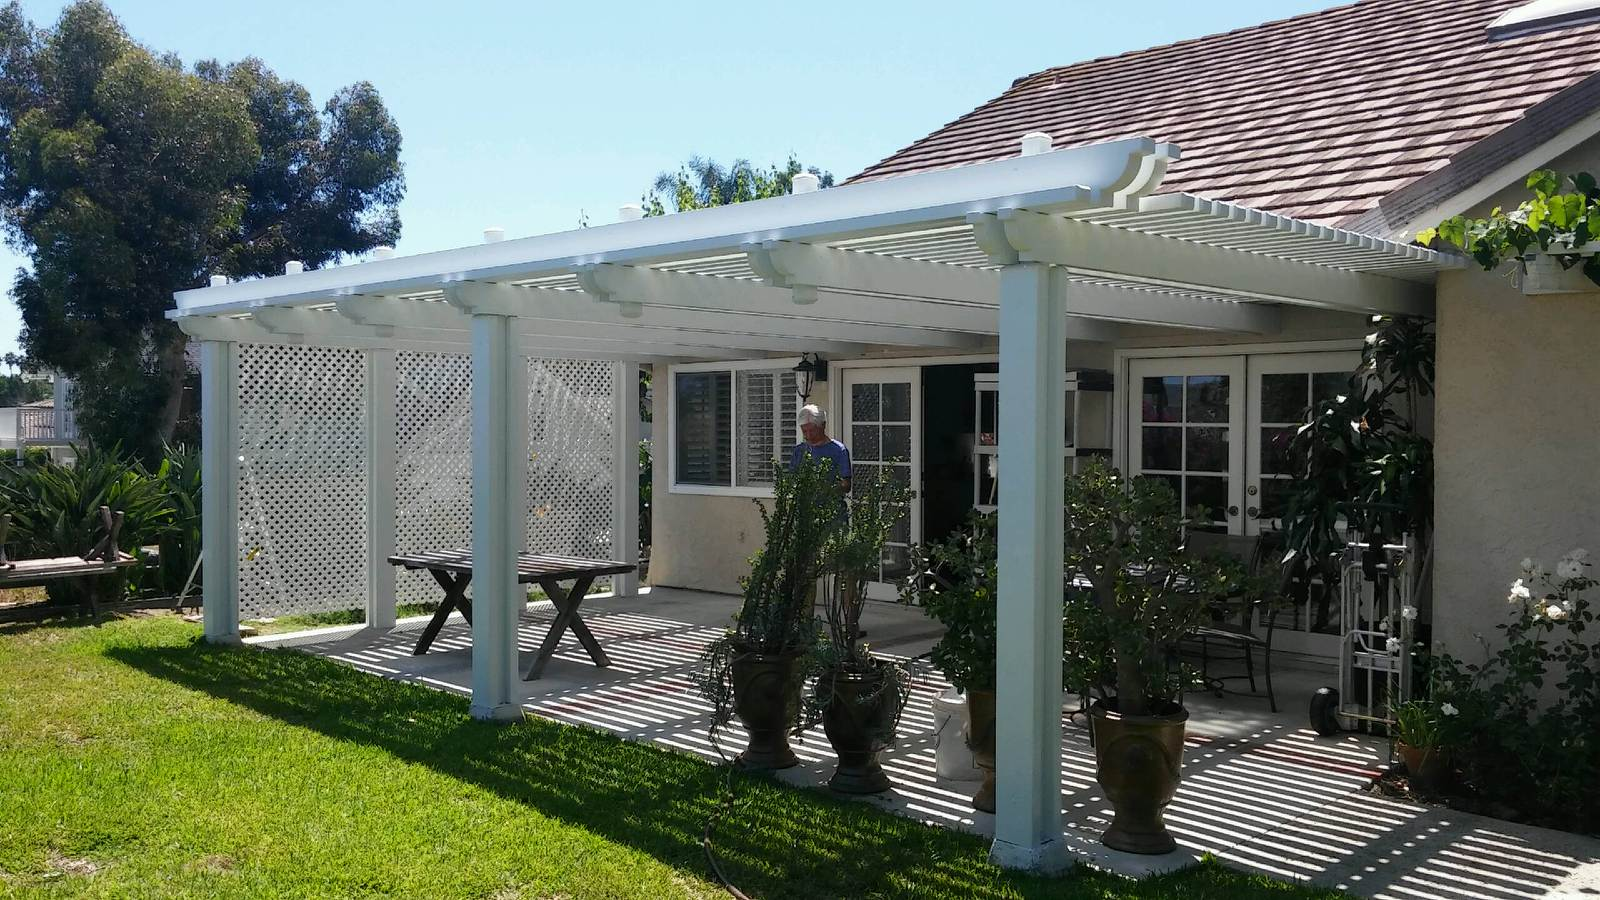 Summer home decorating ideas comfree blogcomfree blog - Orange County Patio Cover Blog Archives The Patio Man